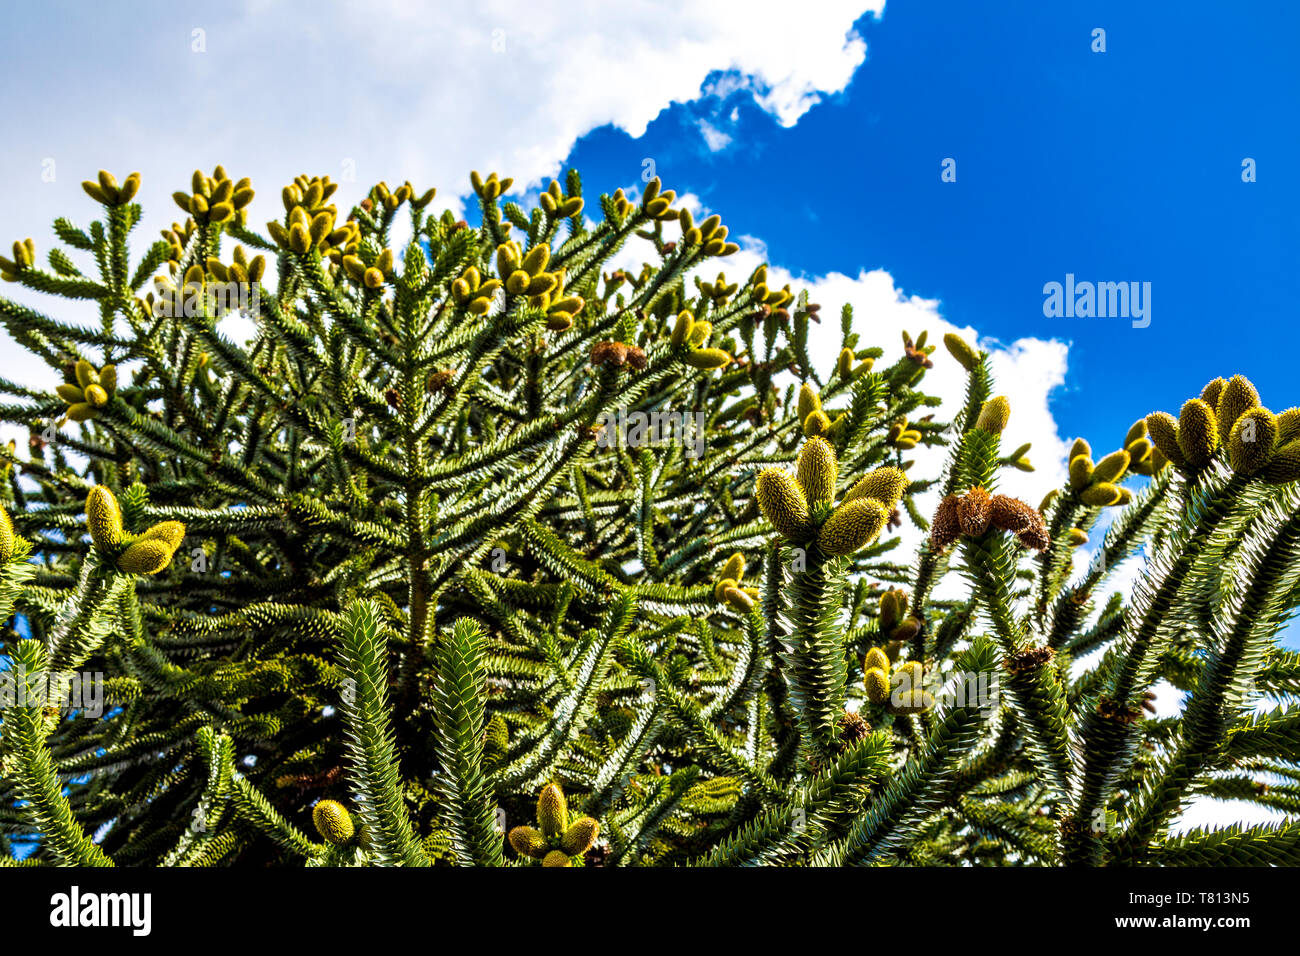 Monkey Puzzle Tree (Araucaria araucana) at Kew Gardens, London, UK - Stock Image